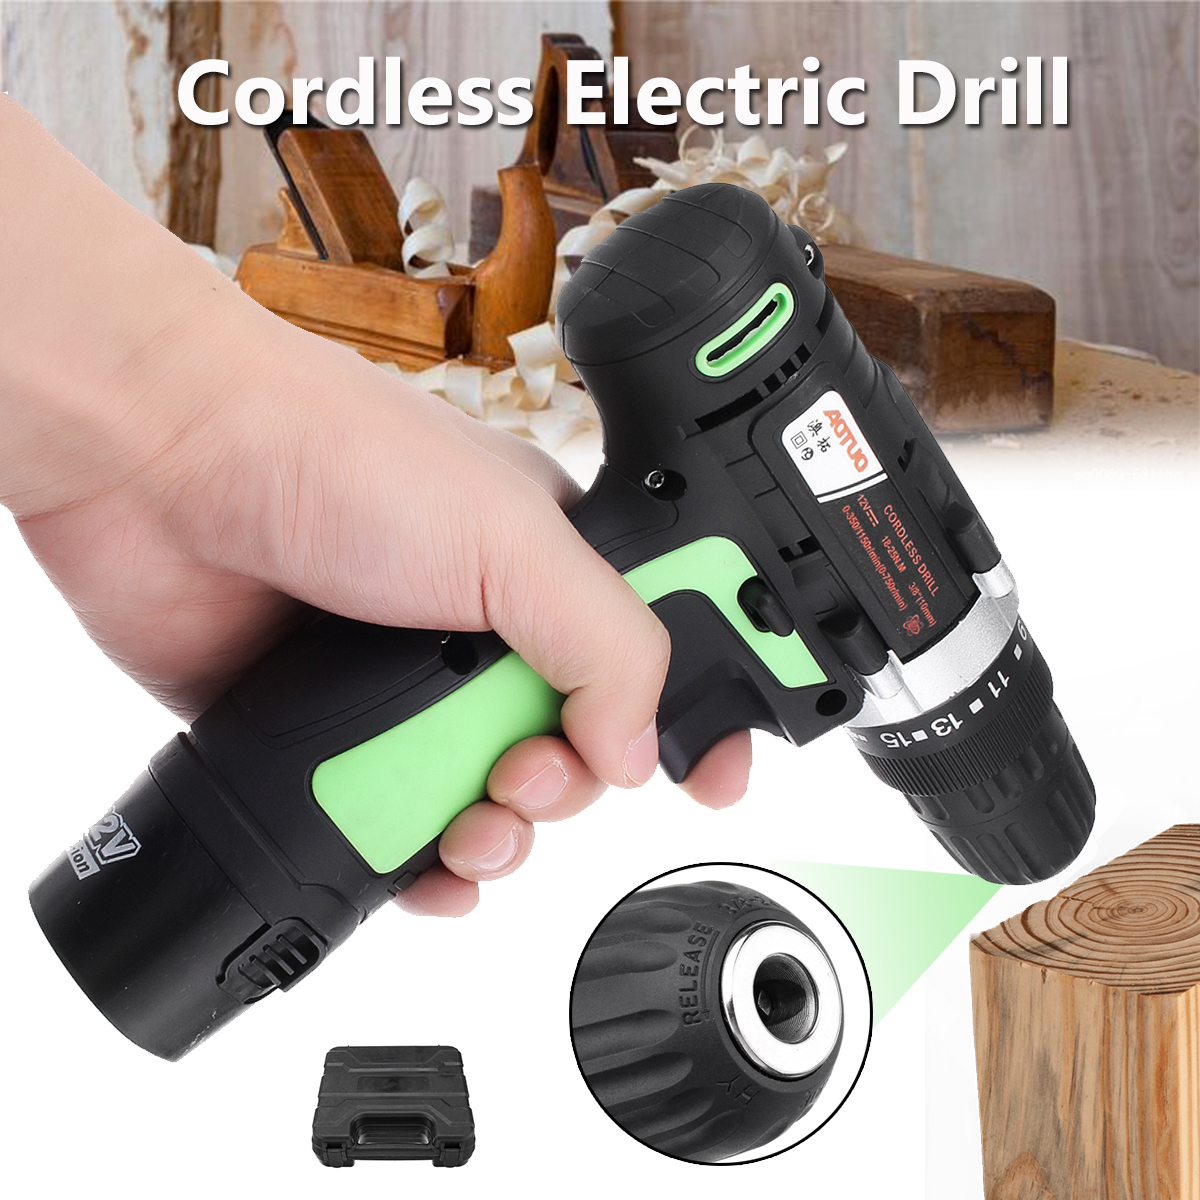 12V Li-Ion Battery Rechargeable Cordless Electric Drill Driver Screwdriver Power Tool With LED Light free shipping proskit pt 1362u usb li ion cordless electric screwdriver electronics repair tool set power tool kit household